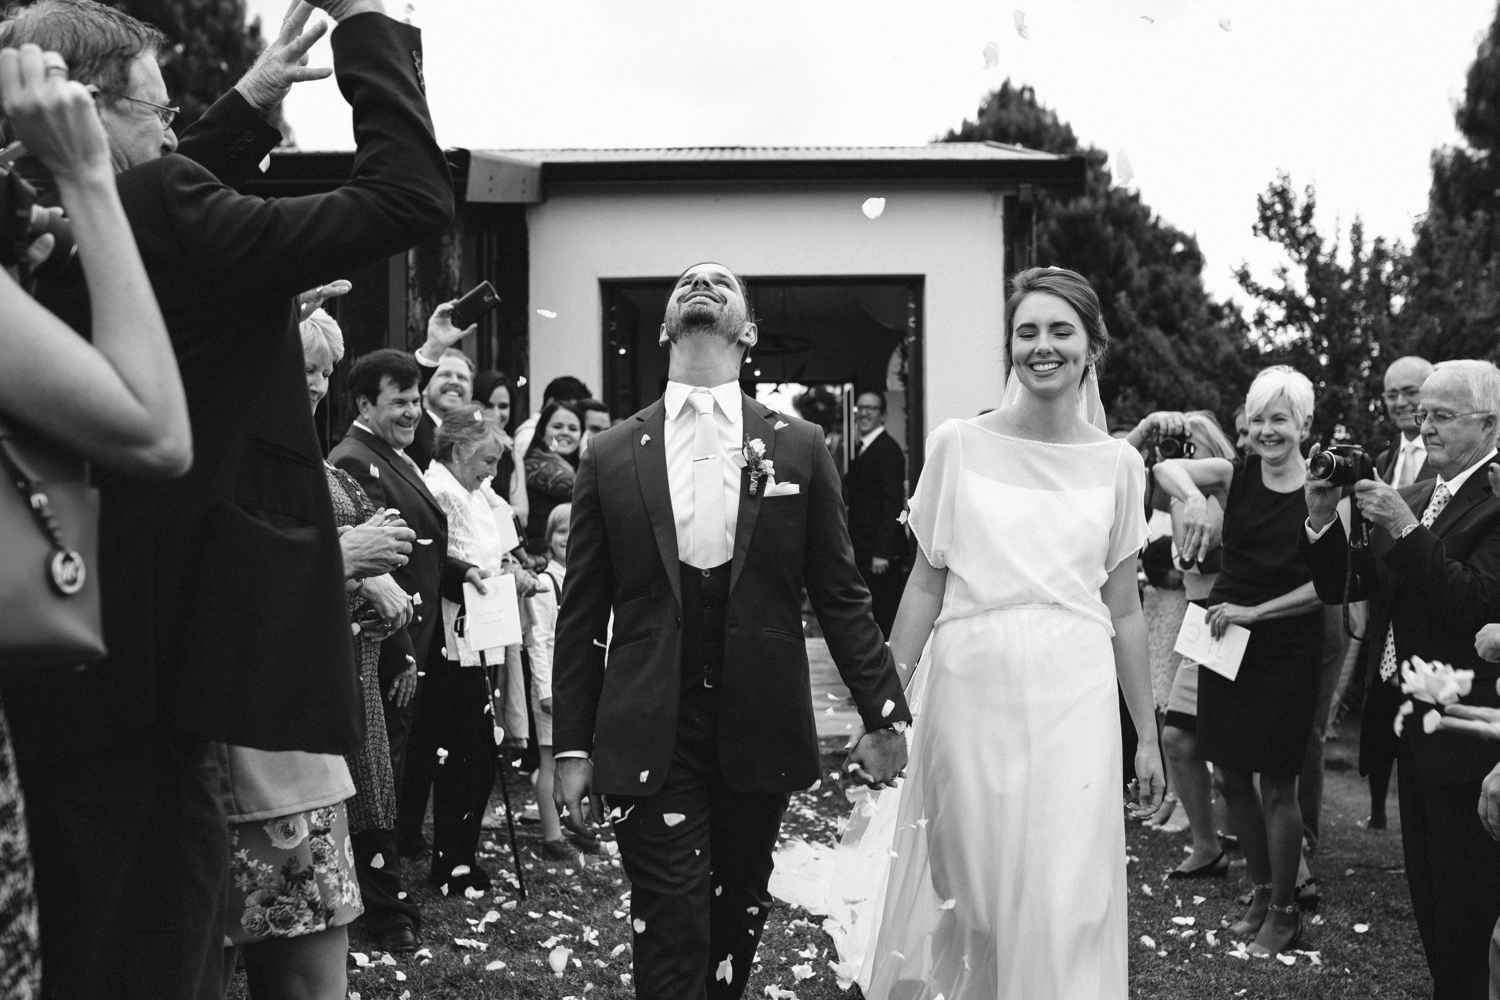 Bride and groom walk down aisle during confetti throw of white roses in farm wedding in Vancouver